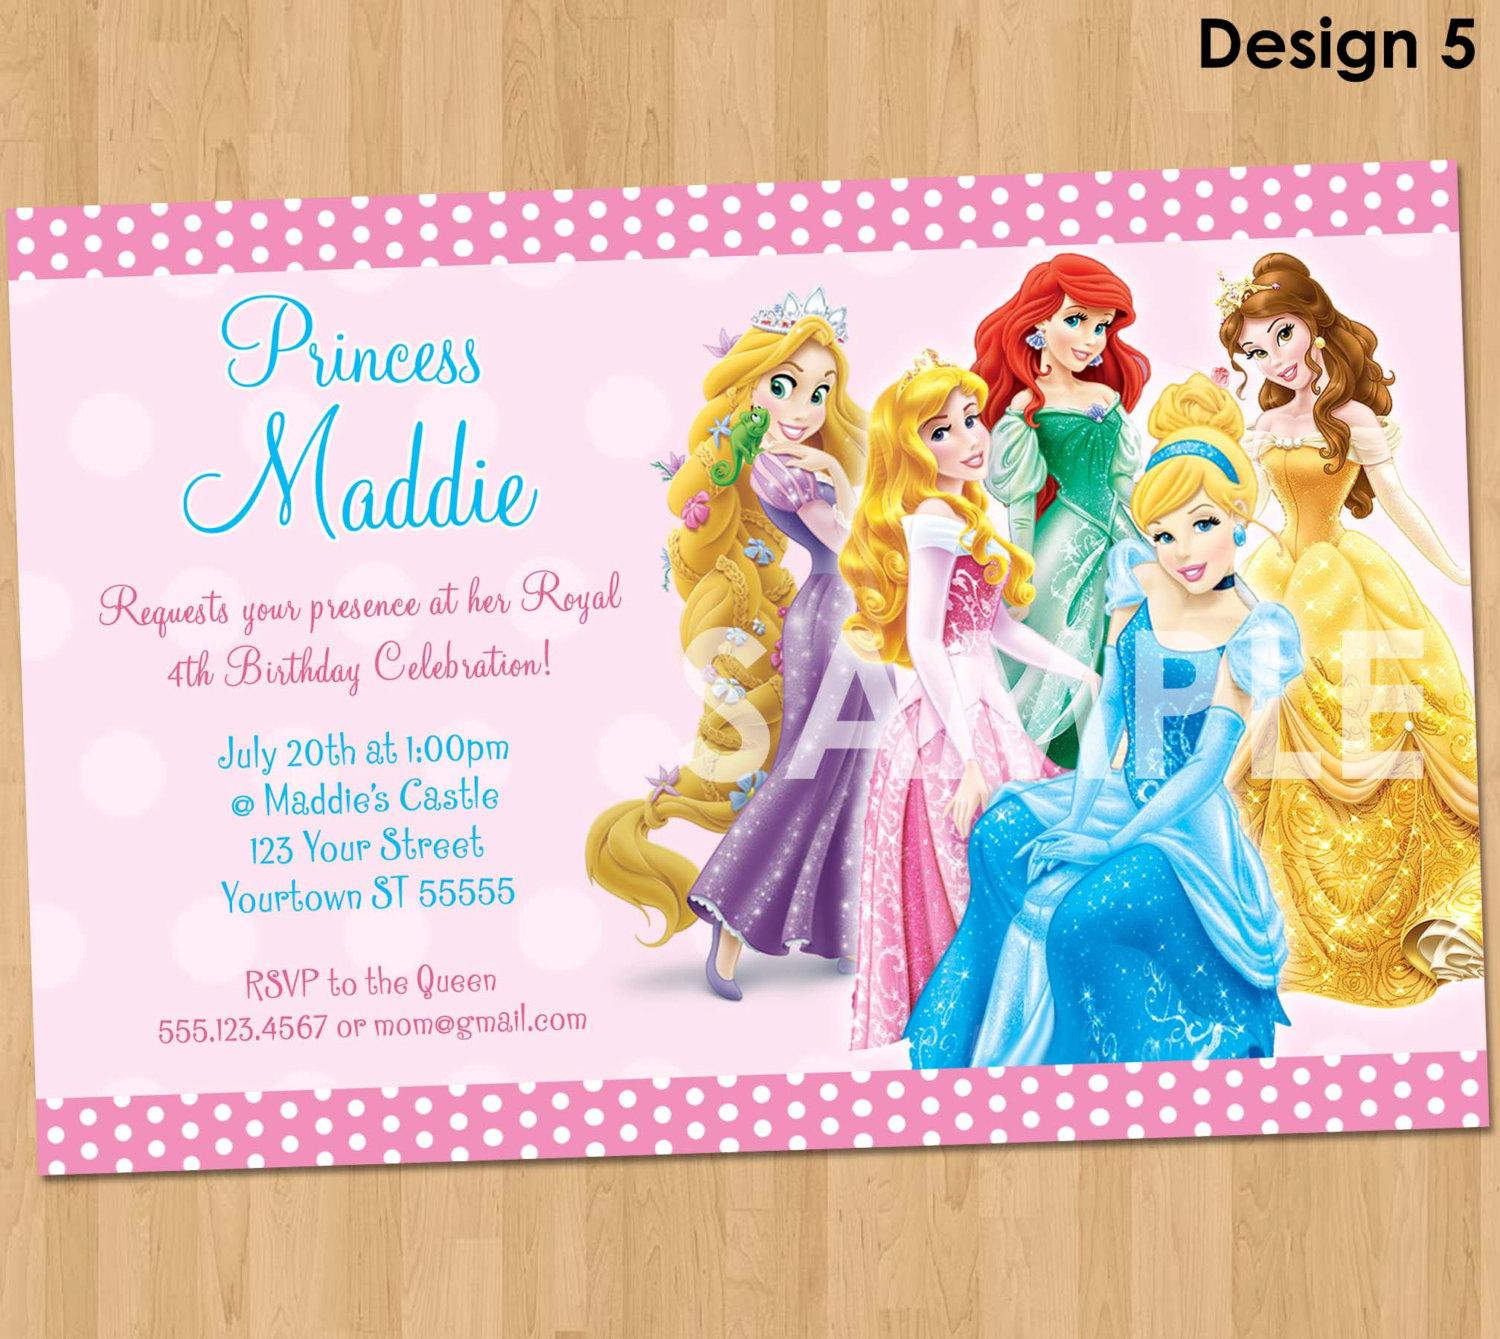 princess themed birthday invitation cards ; Disney-Princess-Birthday-Party-Invitations-combined-with-your-creativity-will-make-this-looks-awesome-1